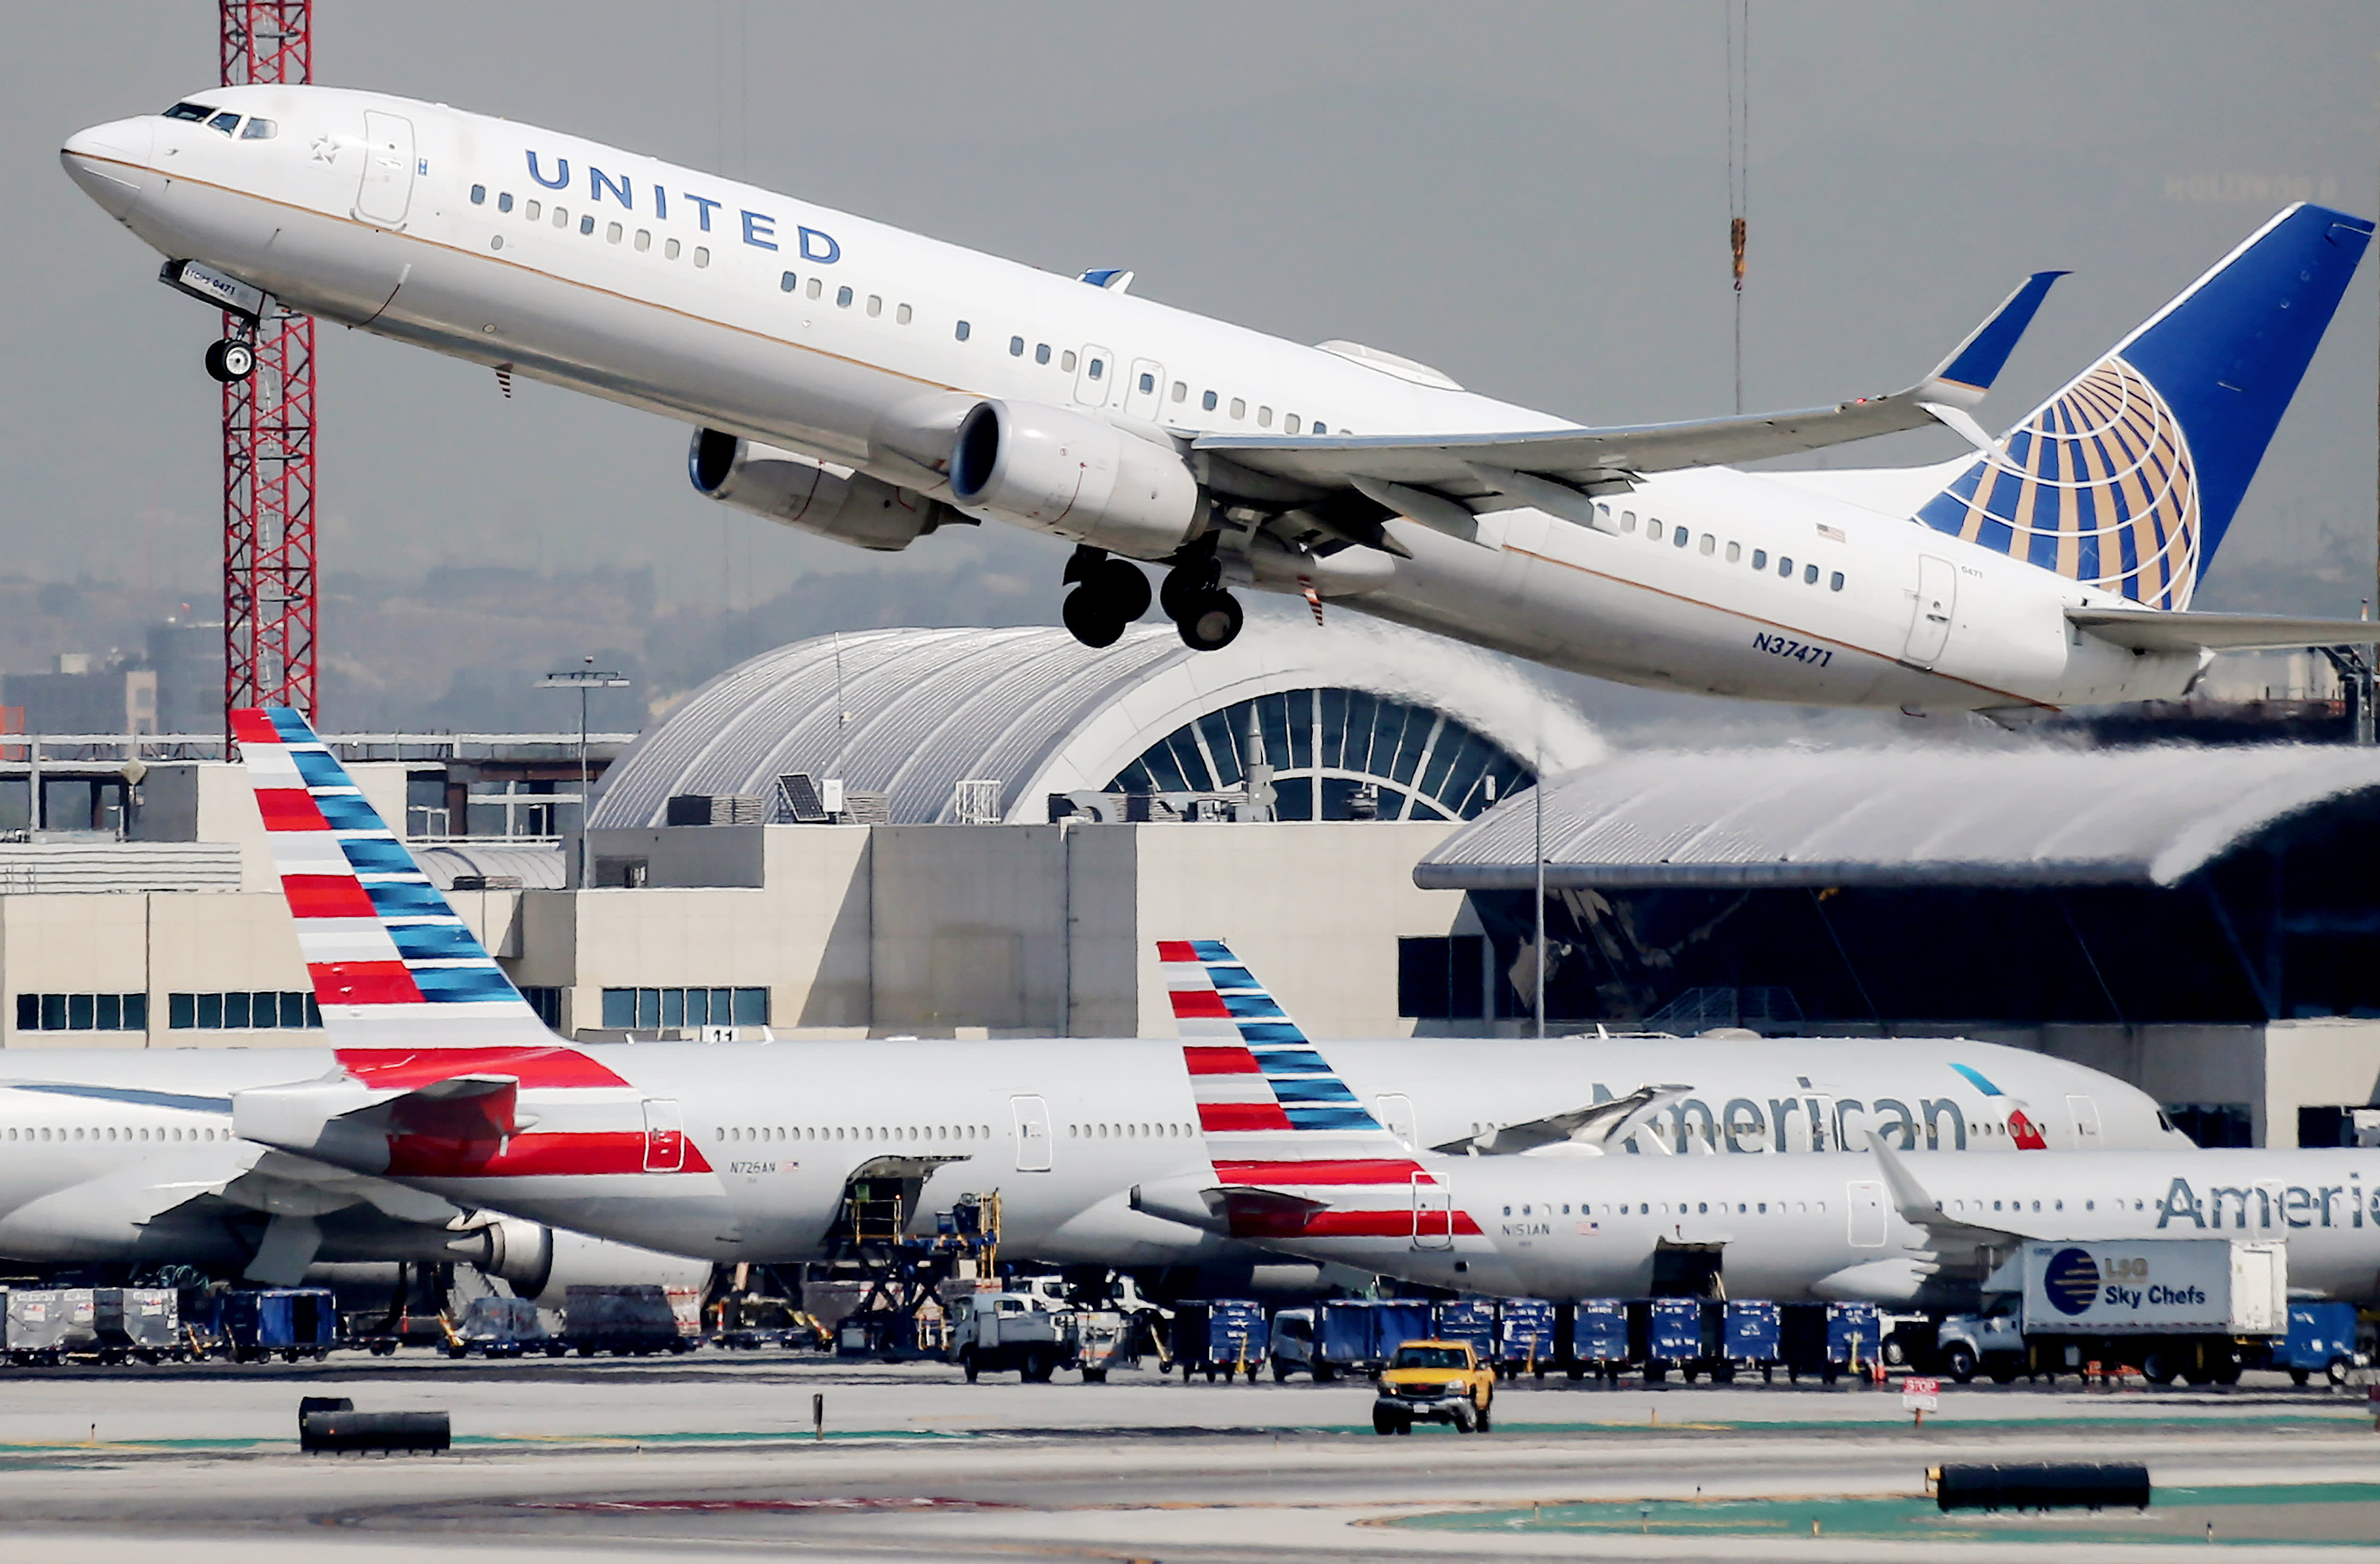 Air travel is picking up as TSA records highest passenger screenings in nearly a year